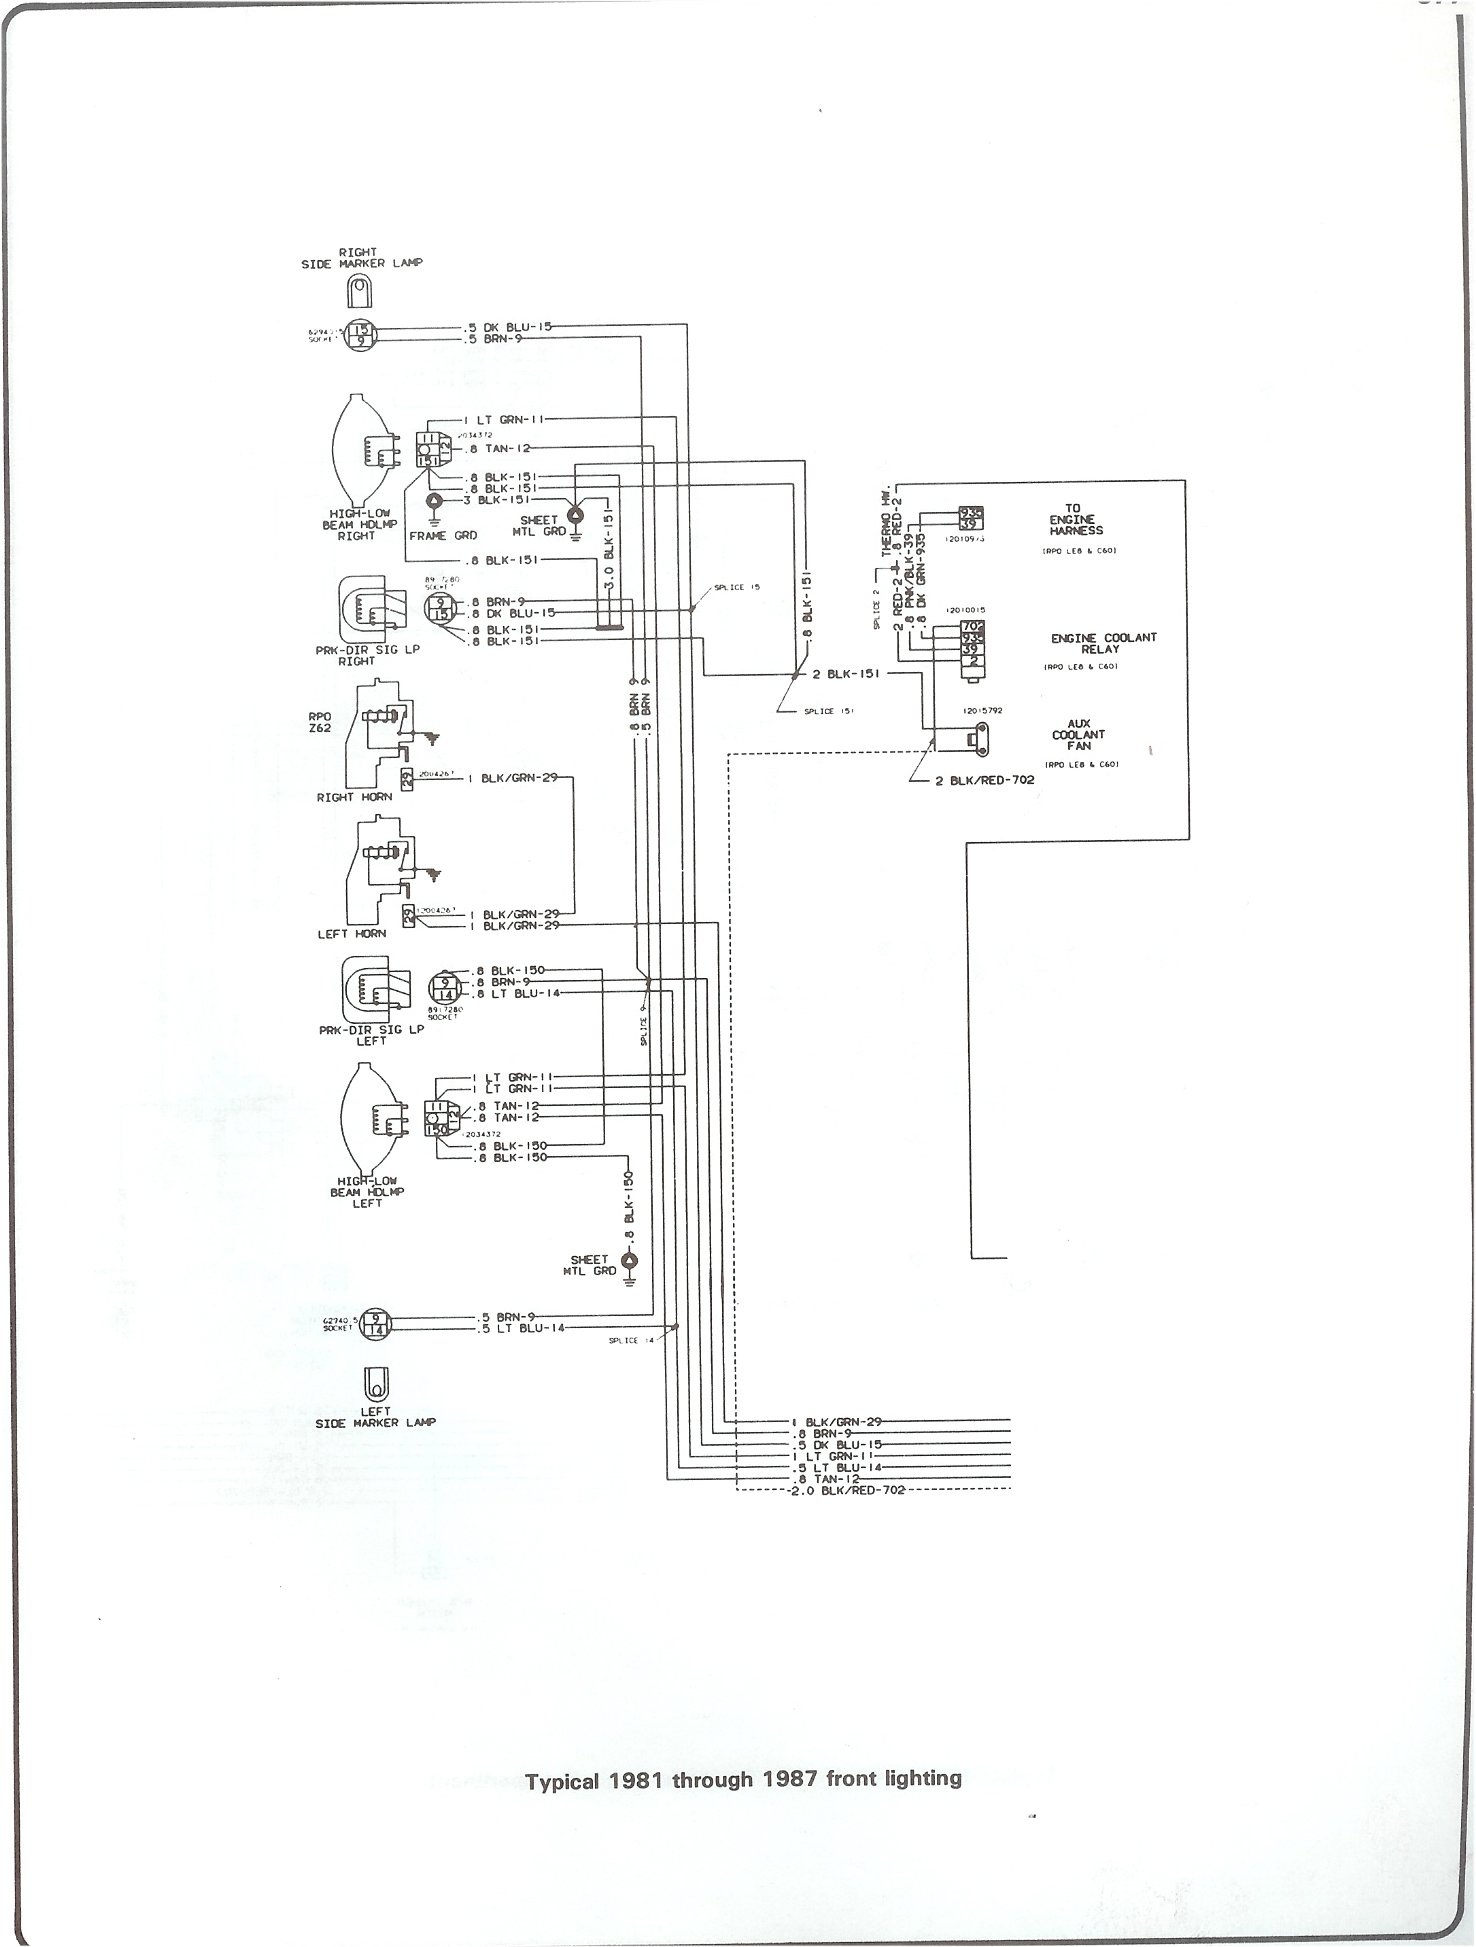 Cargo Light Wiring Diagram 1987 Chevy Truck - Electrical Wiring ...